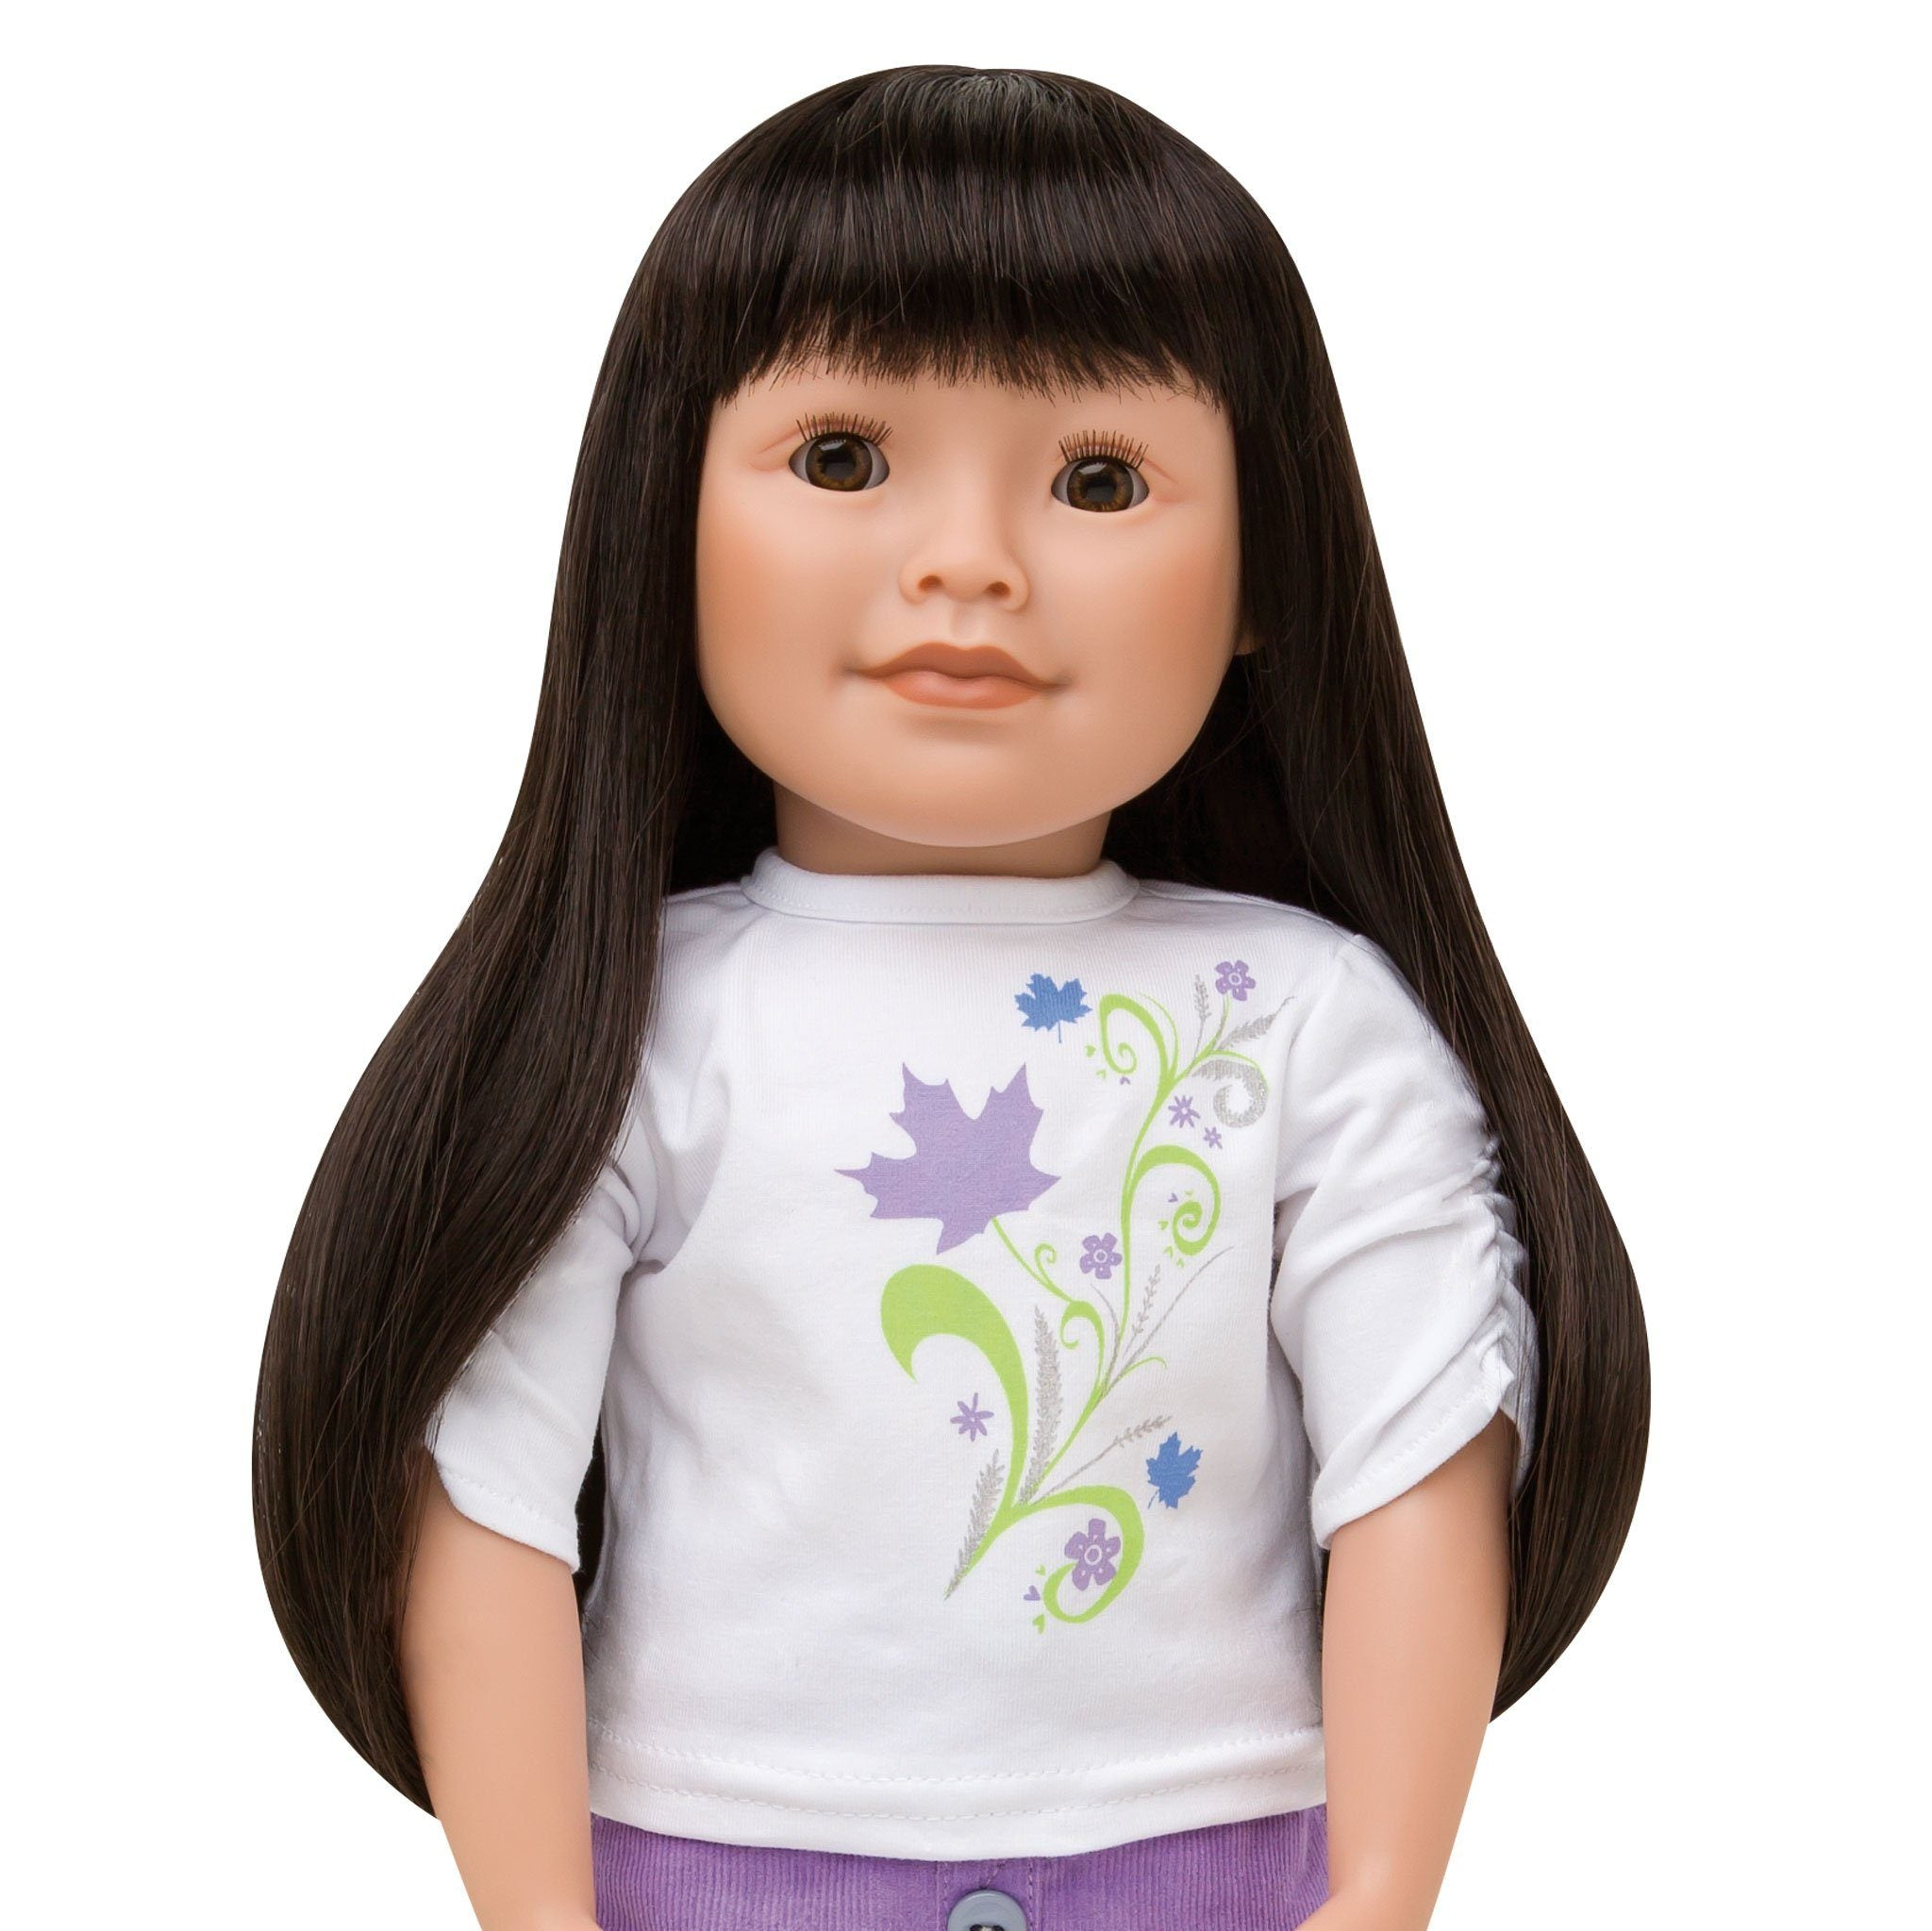 KMF9 Maplelea Friend 18 inch doll with long dark brown hair with bangs, medium-light skin, brown almond-shaped eyes